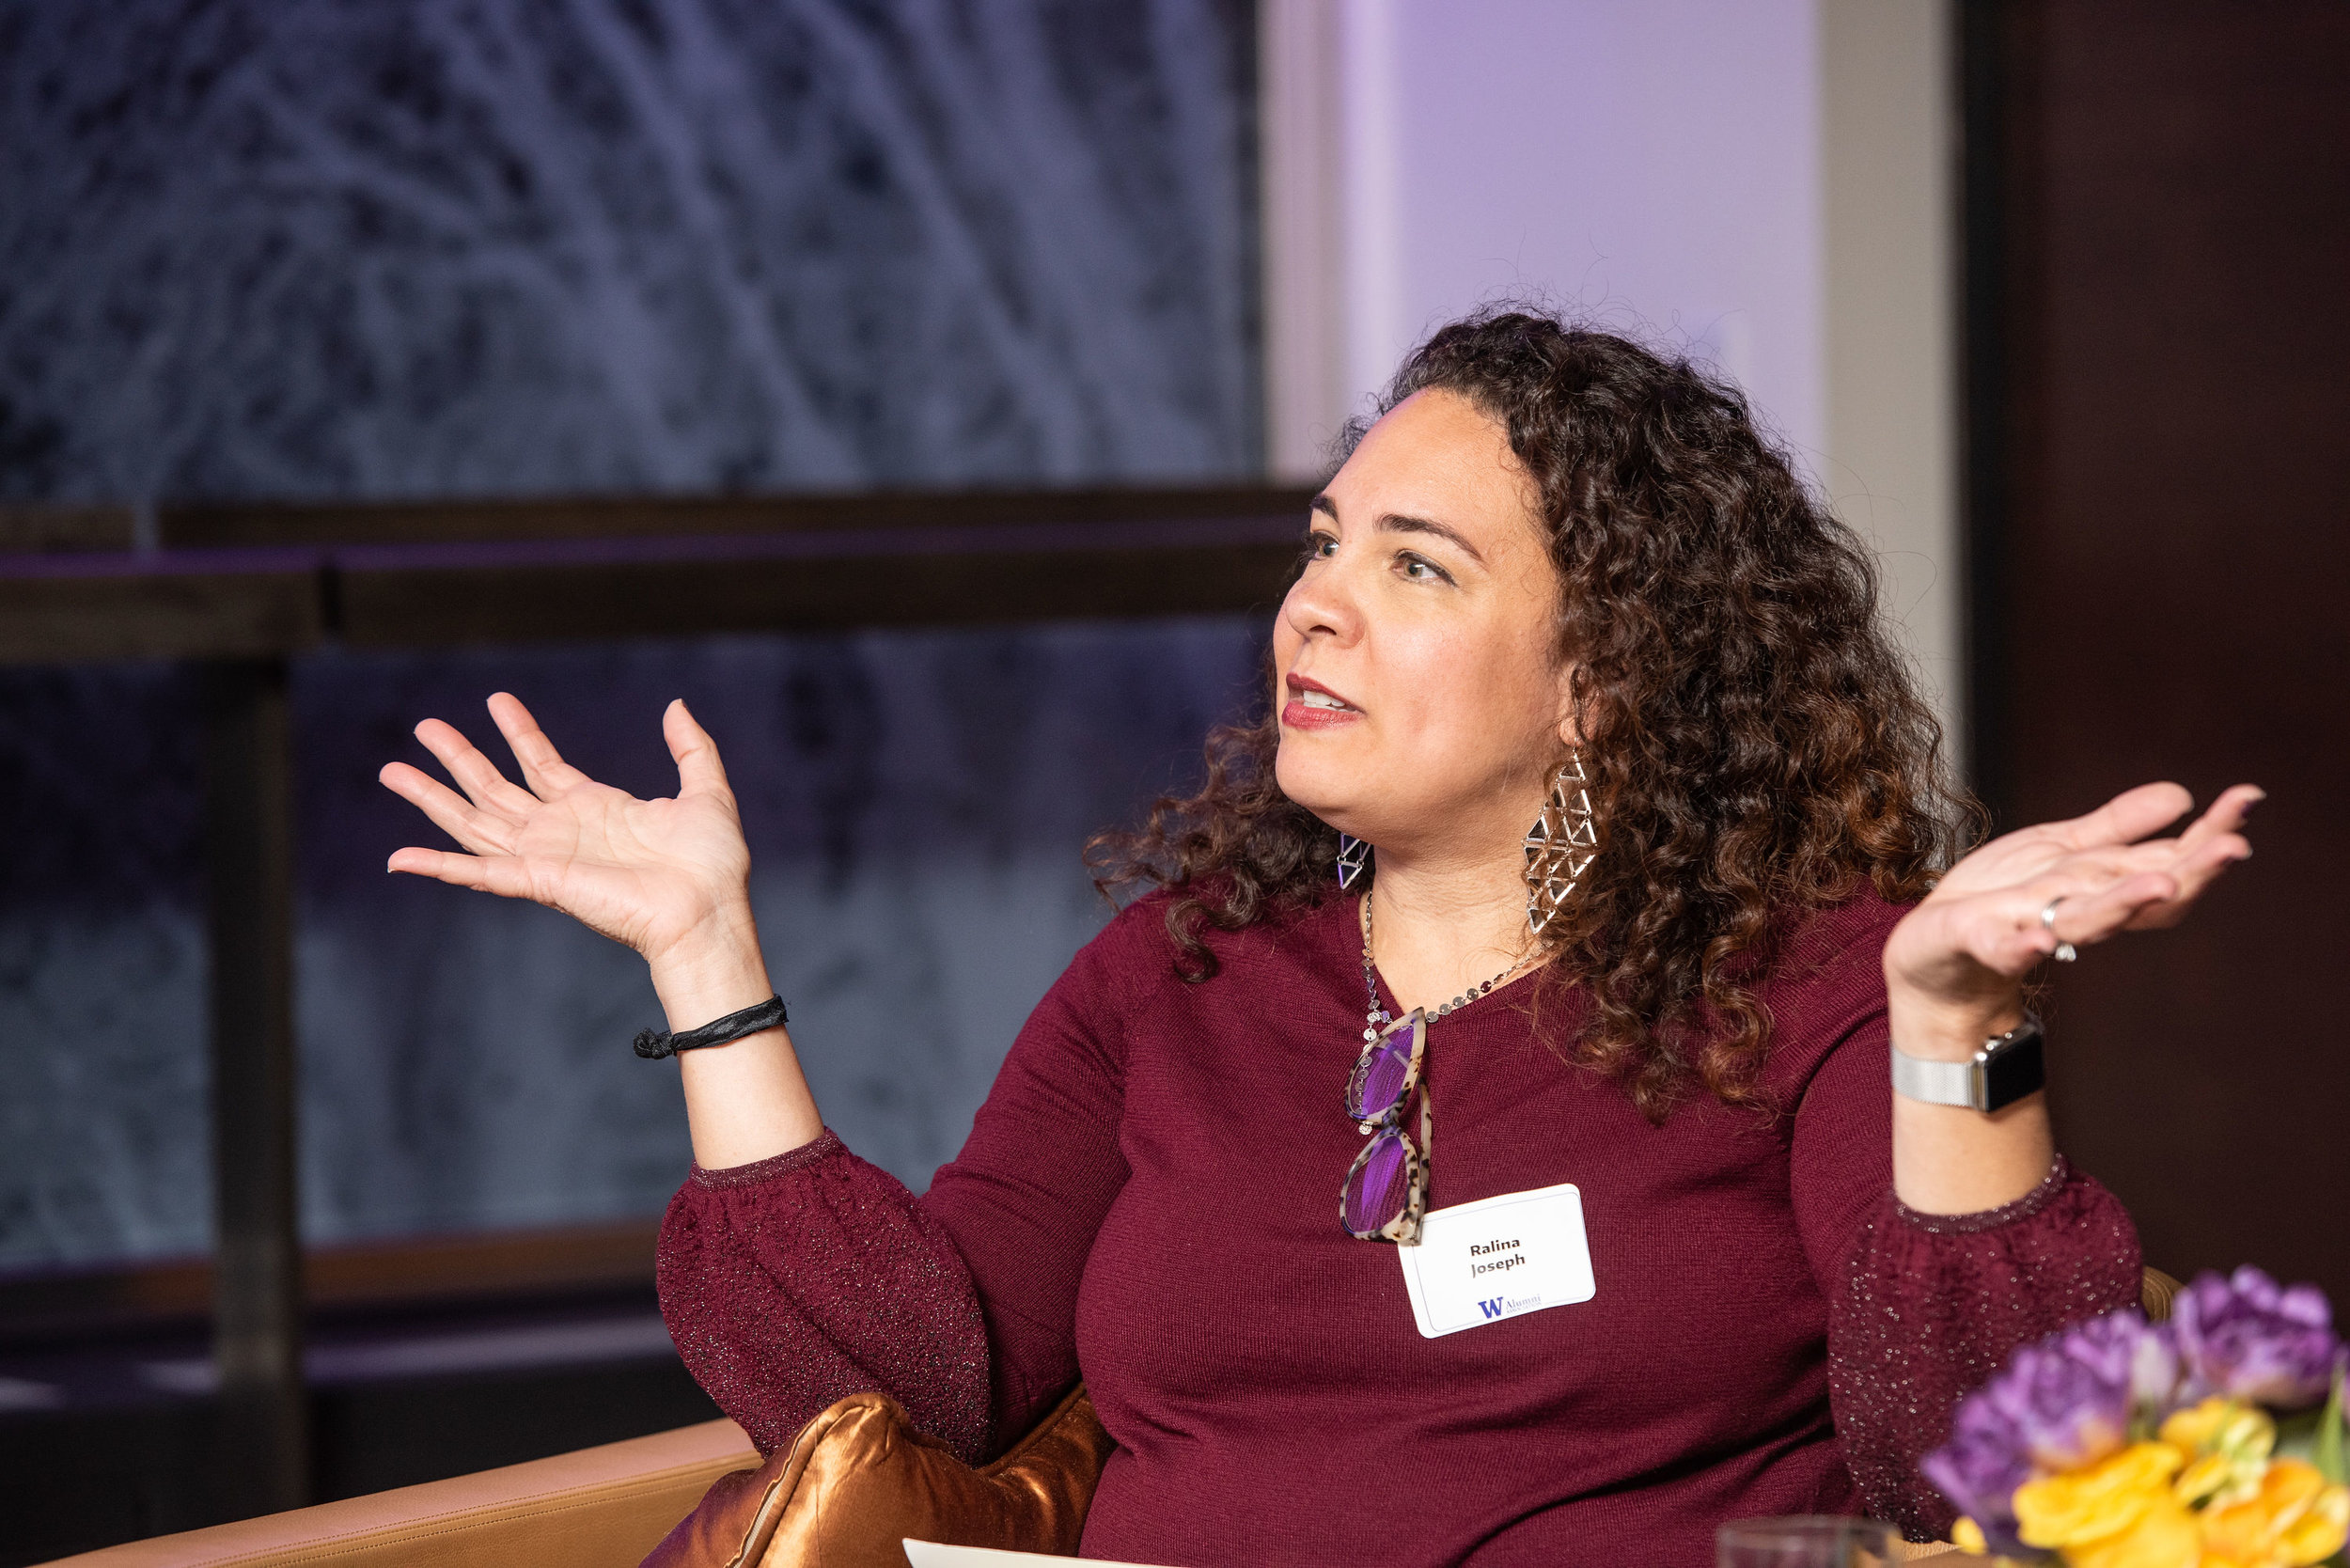 how black women navigate race in the public eye - March 29, 2019 - When people underestimate University of Washington professor Ralina L. Joseph, she said she tends to laugh it off, instead of showing anger.Listen to the KUOW radio story here